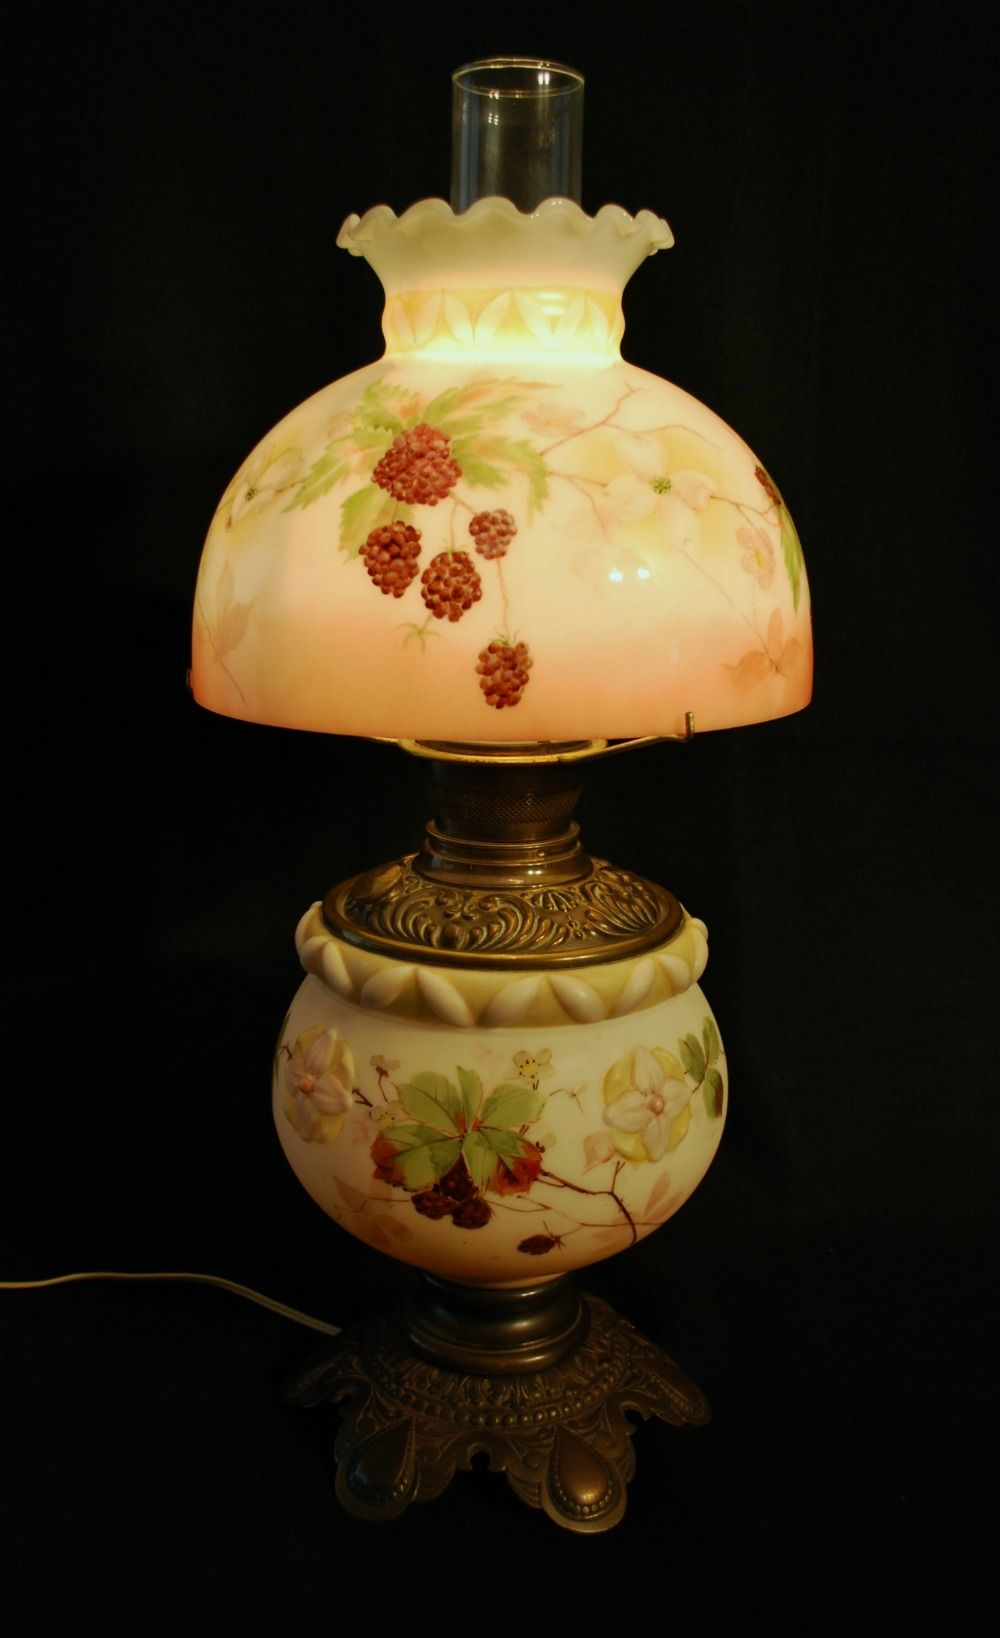 Custom painted shade for antique lamp if you are in need of a custom painted shade for antique lamp if you are in need of a replacement shade contact me through my shop newlightdesigns aloadofball Images